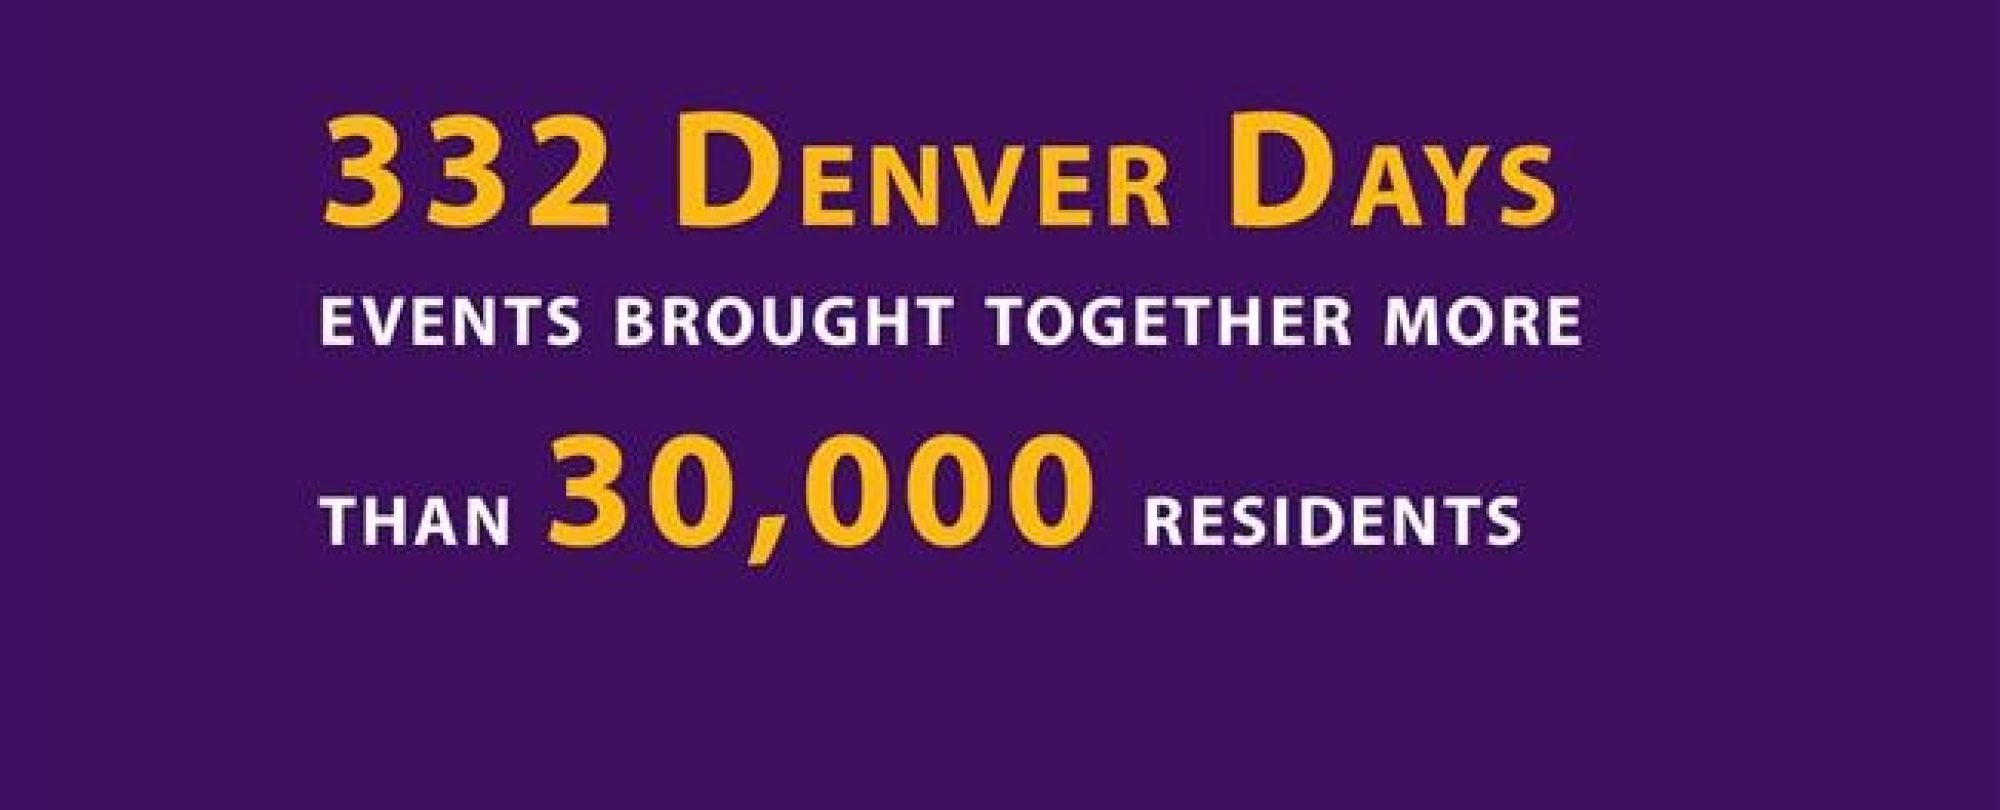 332 Denver Days events brought together more than 30,000 residents.